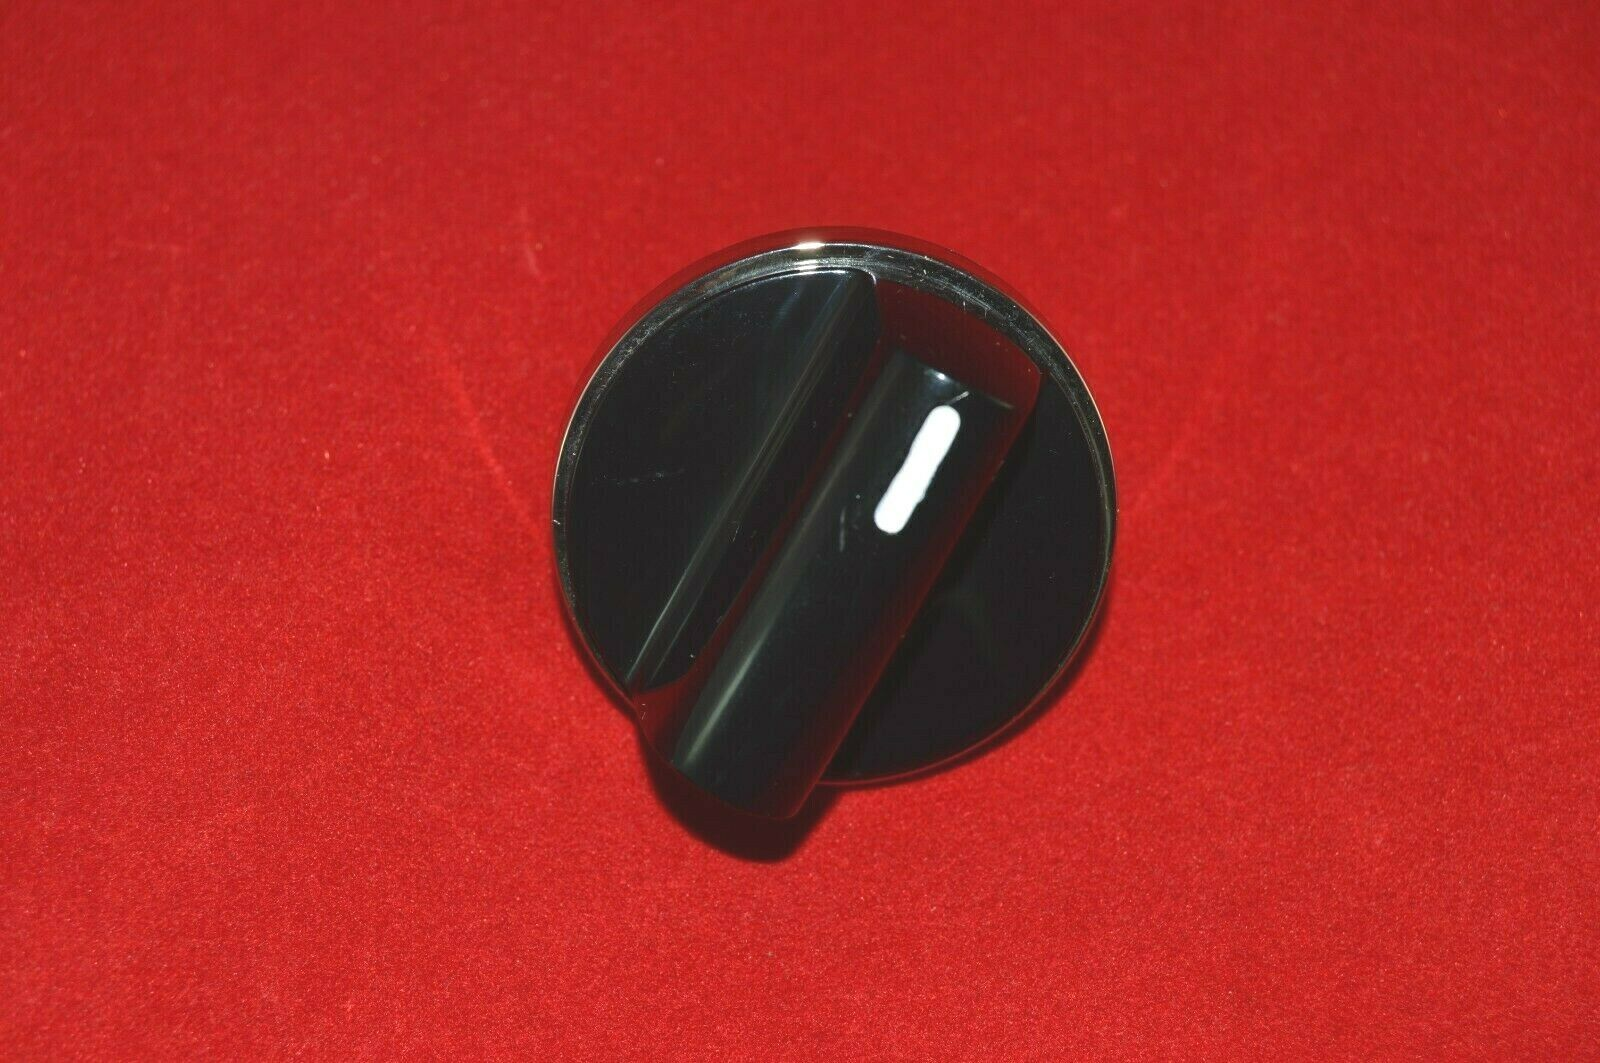 650847 bosch appliance knob cooking area new